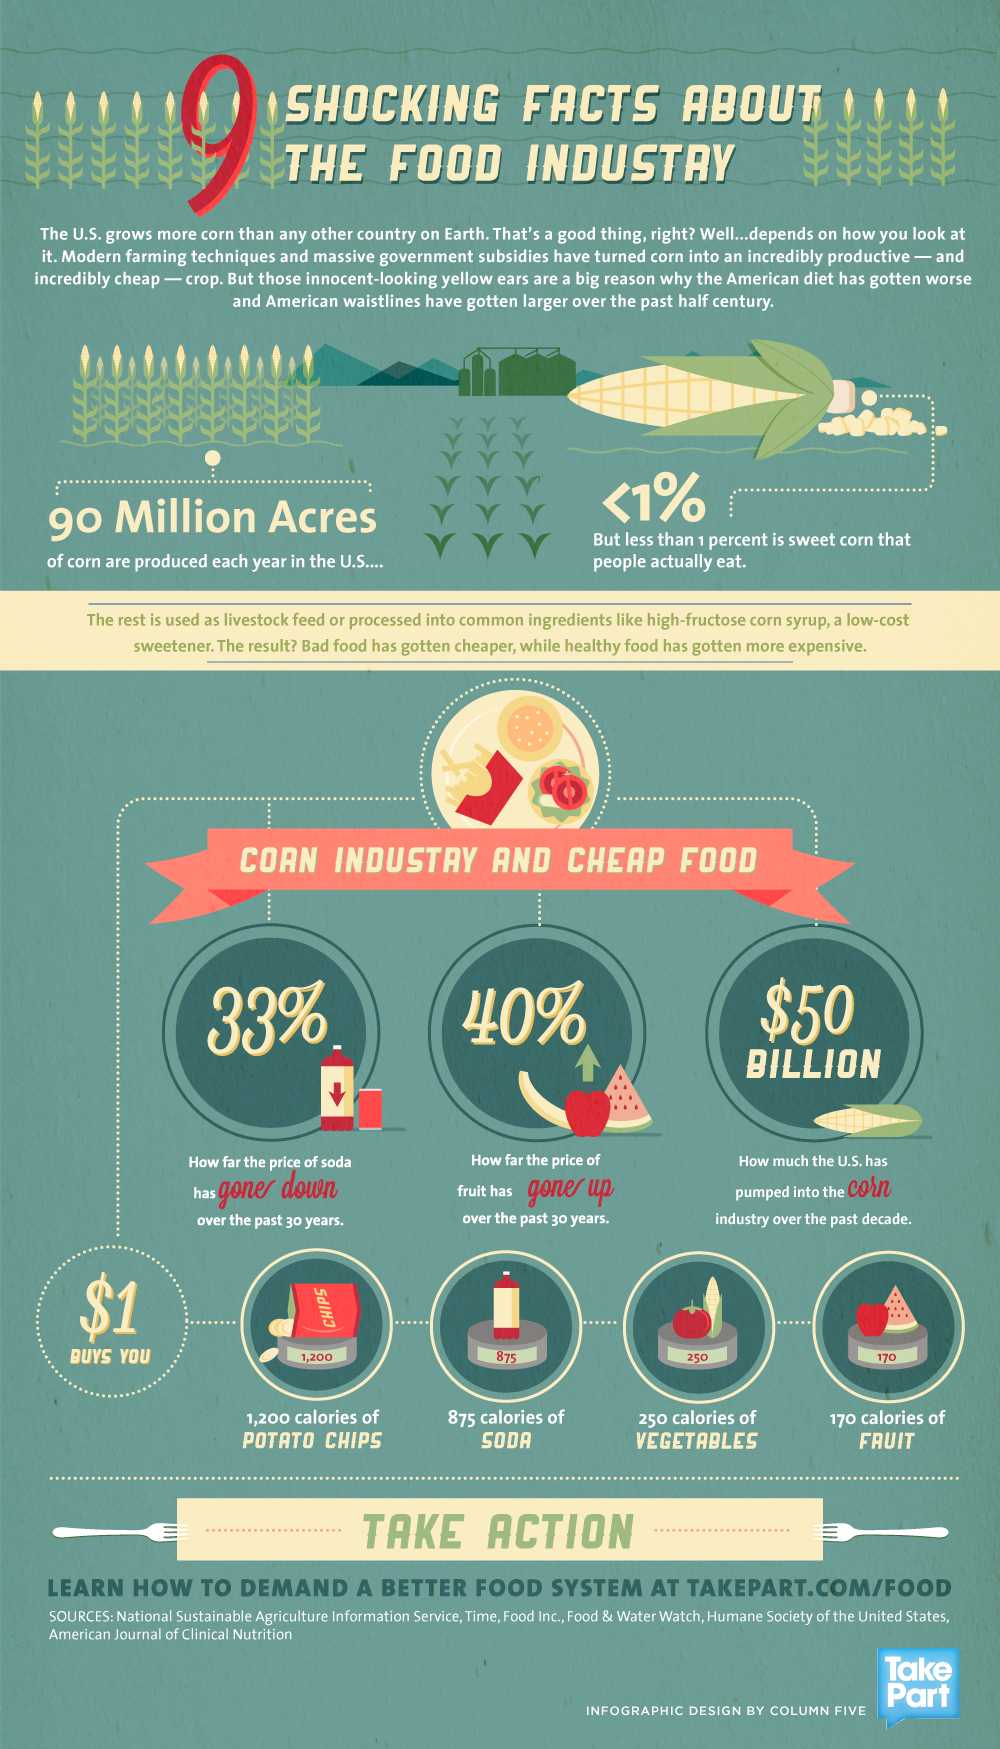 9_shocking_facts_about_the_food_industry_infographic.png